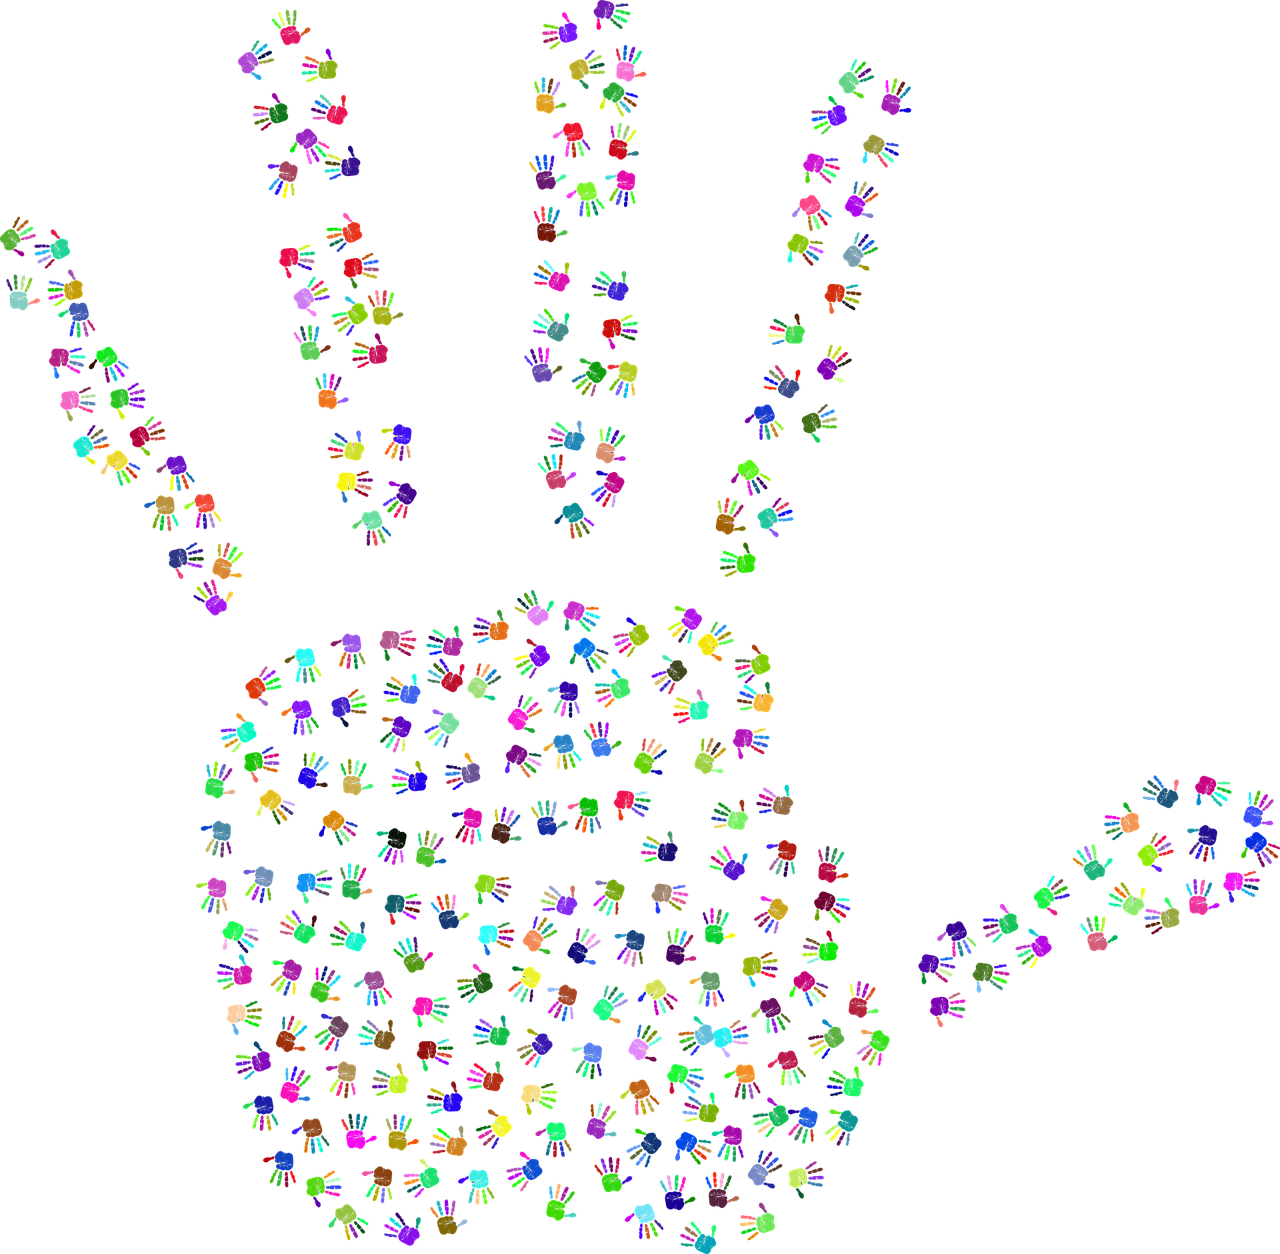 Hands fingers human image. Handprint transparent digital jpg library stock